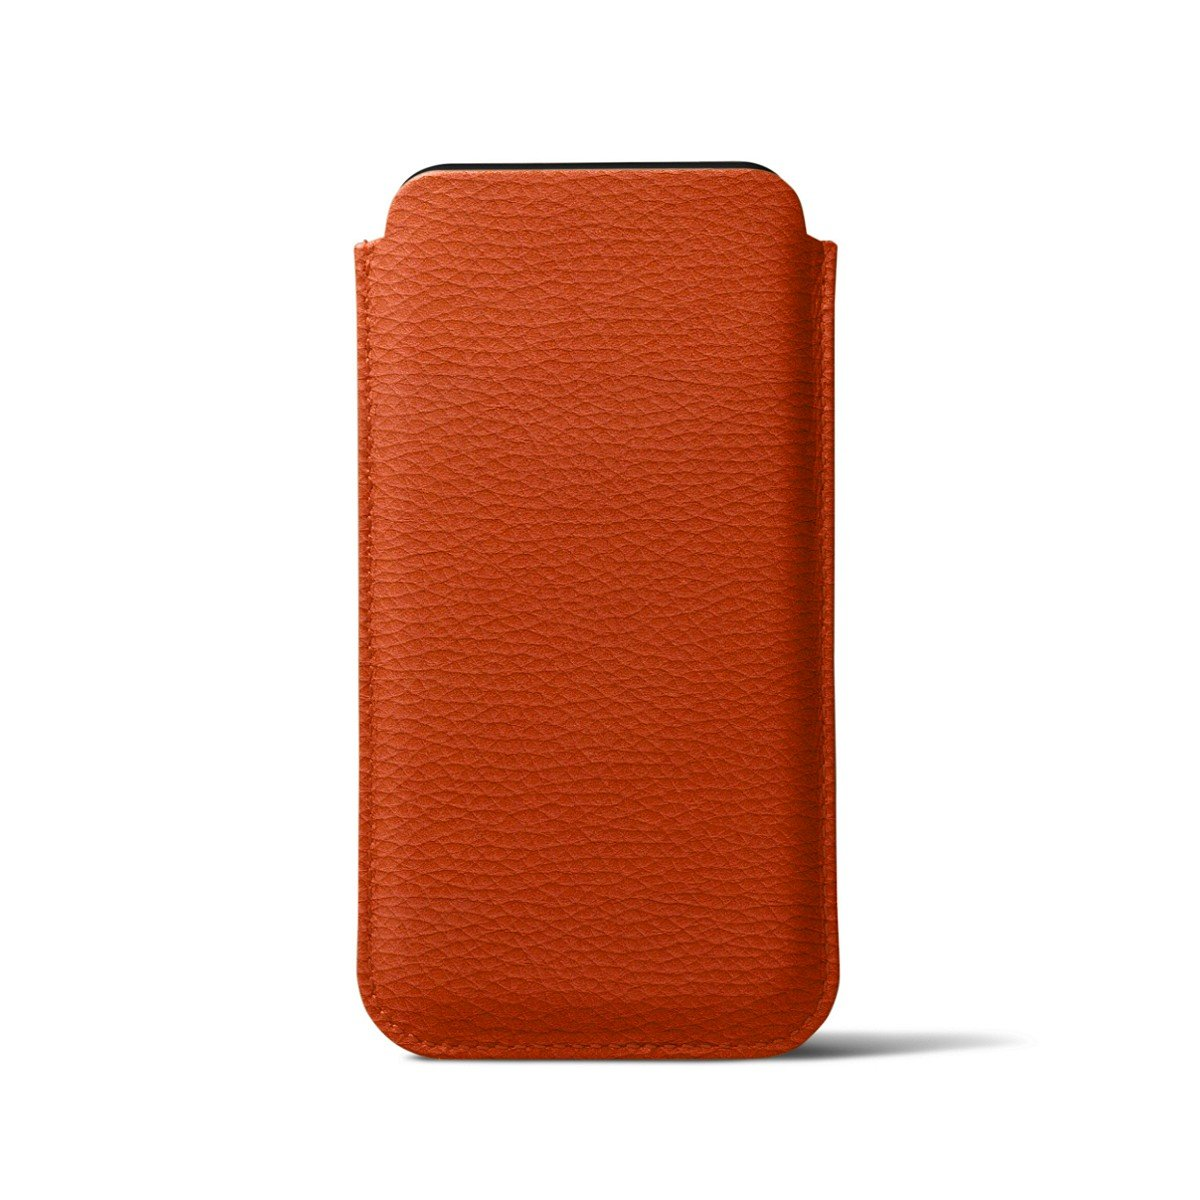 Lucrin - Classic Case for iPhone X - Orange - Granulated Leather by Lucrin (Image #6)